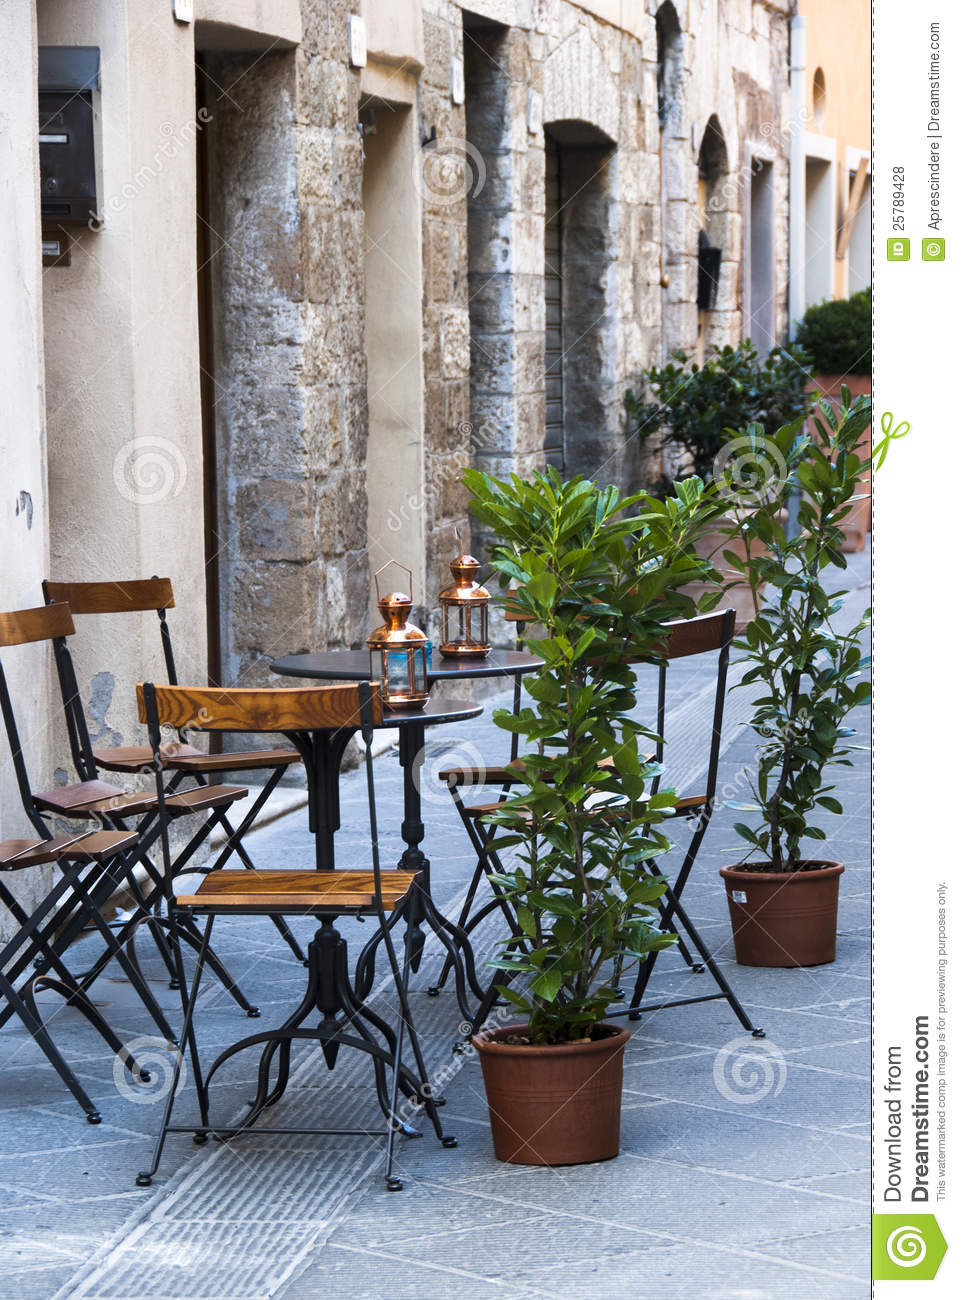 Comfortable Chairs Italian Outdoor Cafe Stock Photo. Image Of City, Italy